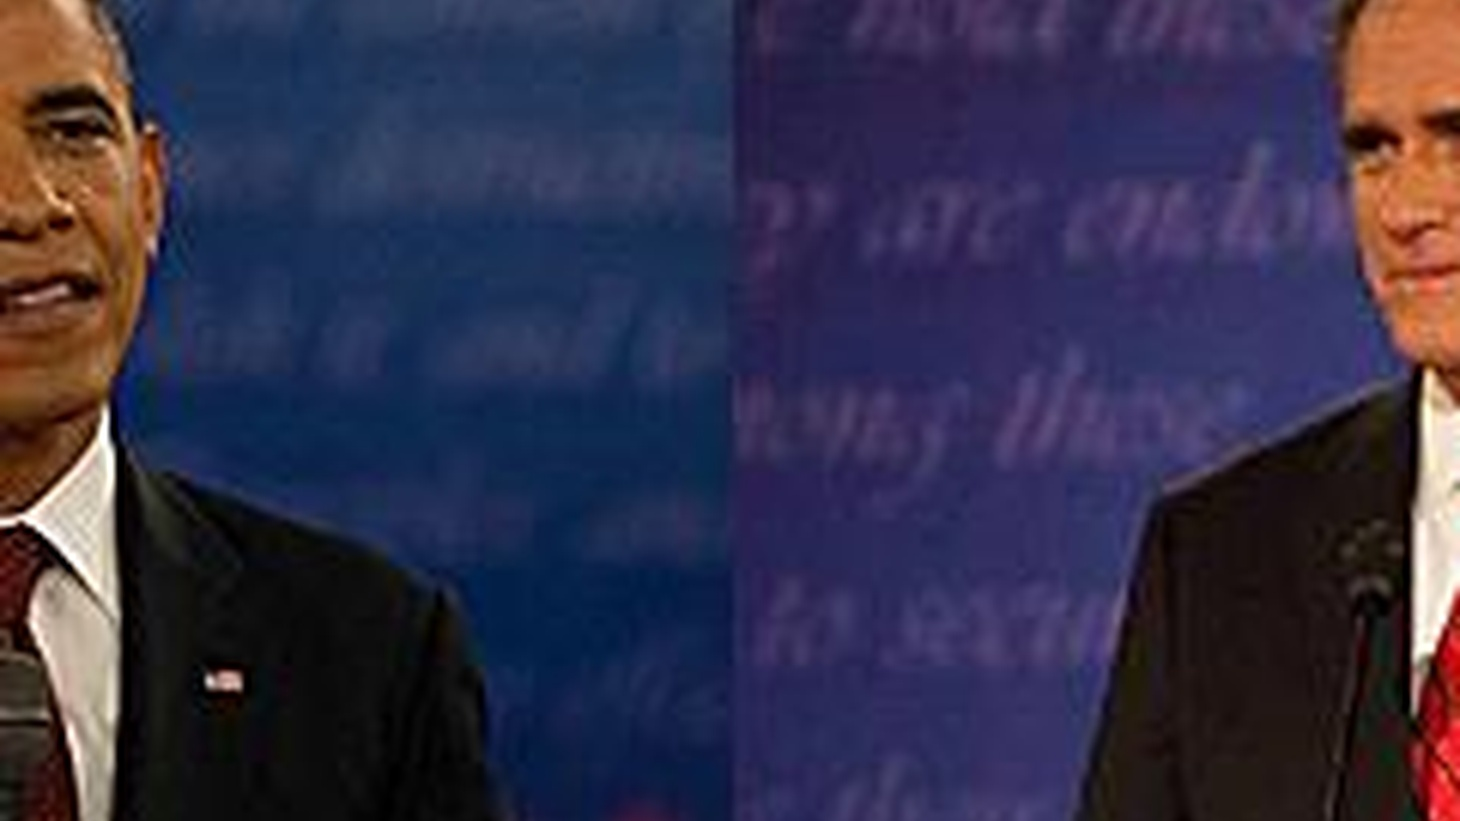 Live coverage of the third and final presidential debate between President Barack Obama and his Republican rival, Governor Mitt Romney. Airs Monday, October 22, 6-8pm.